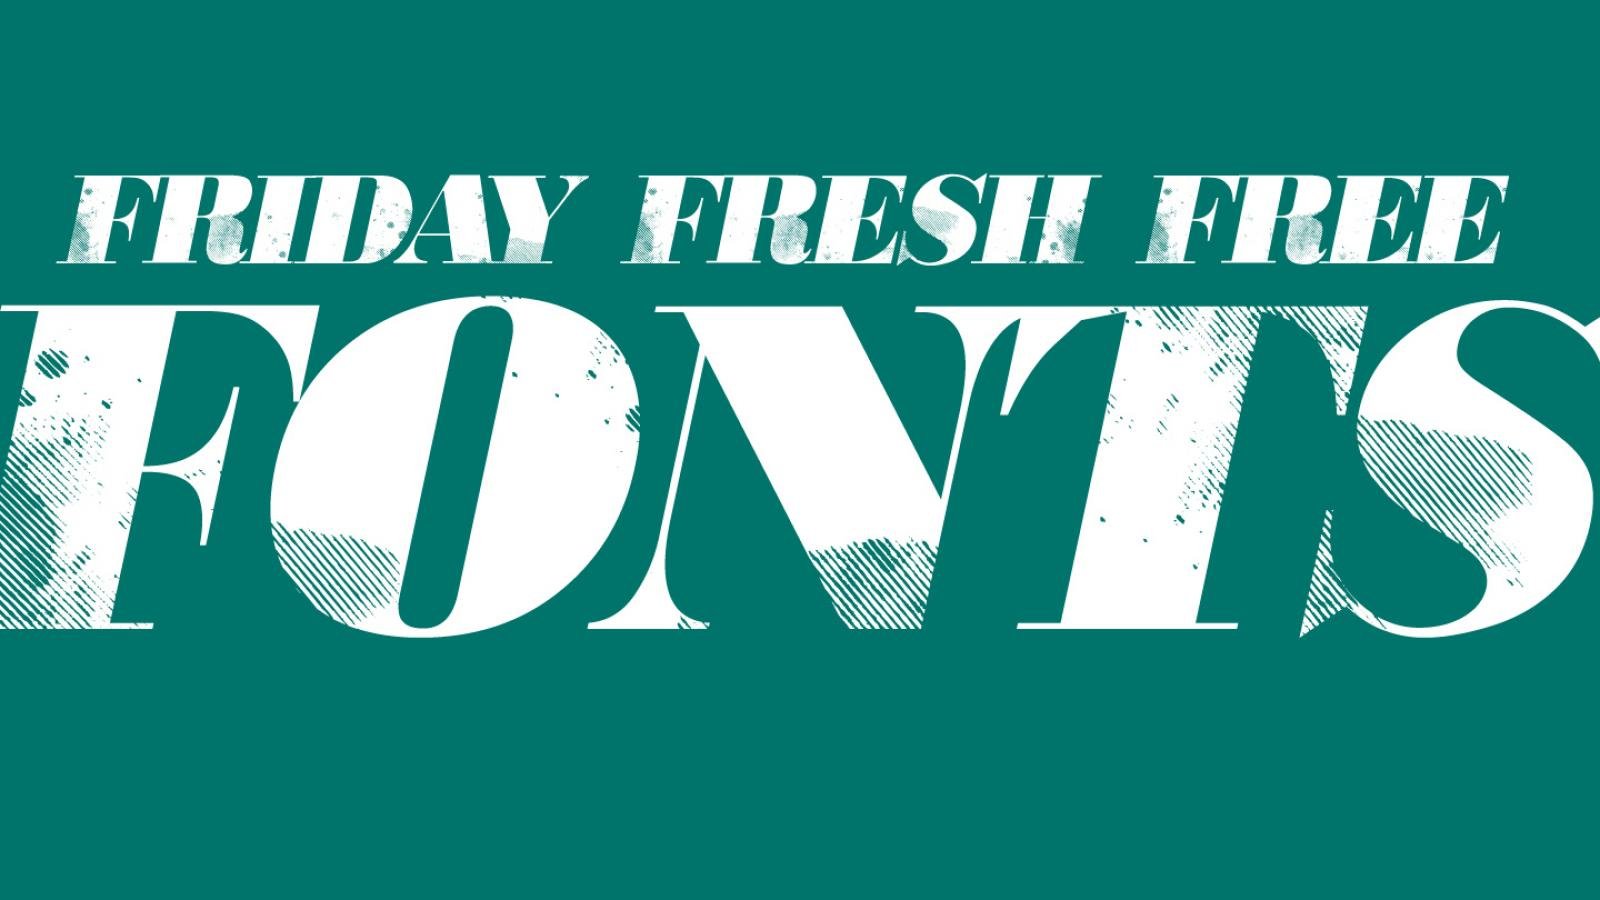 Friday Fresh Free Fonts - Goudy, 806 Typography, Cookie